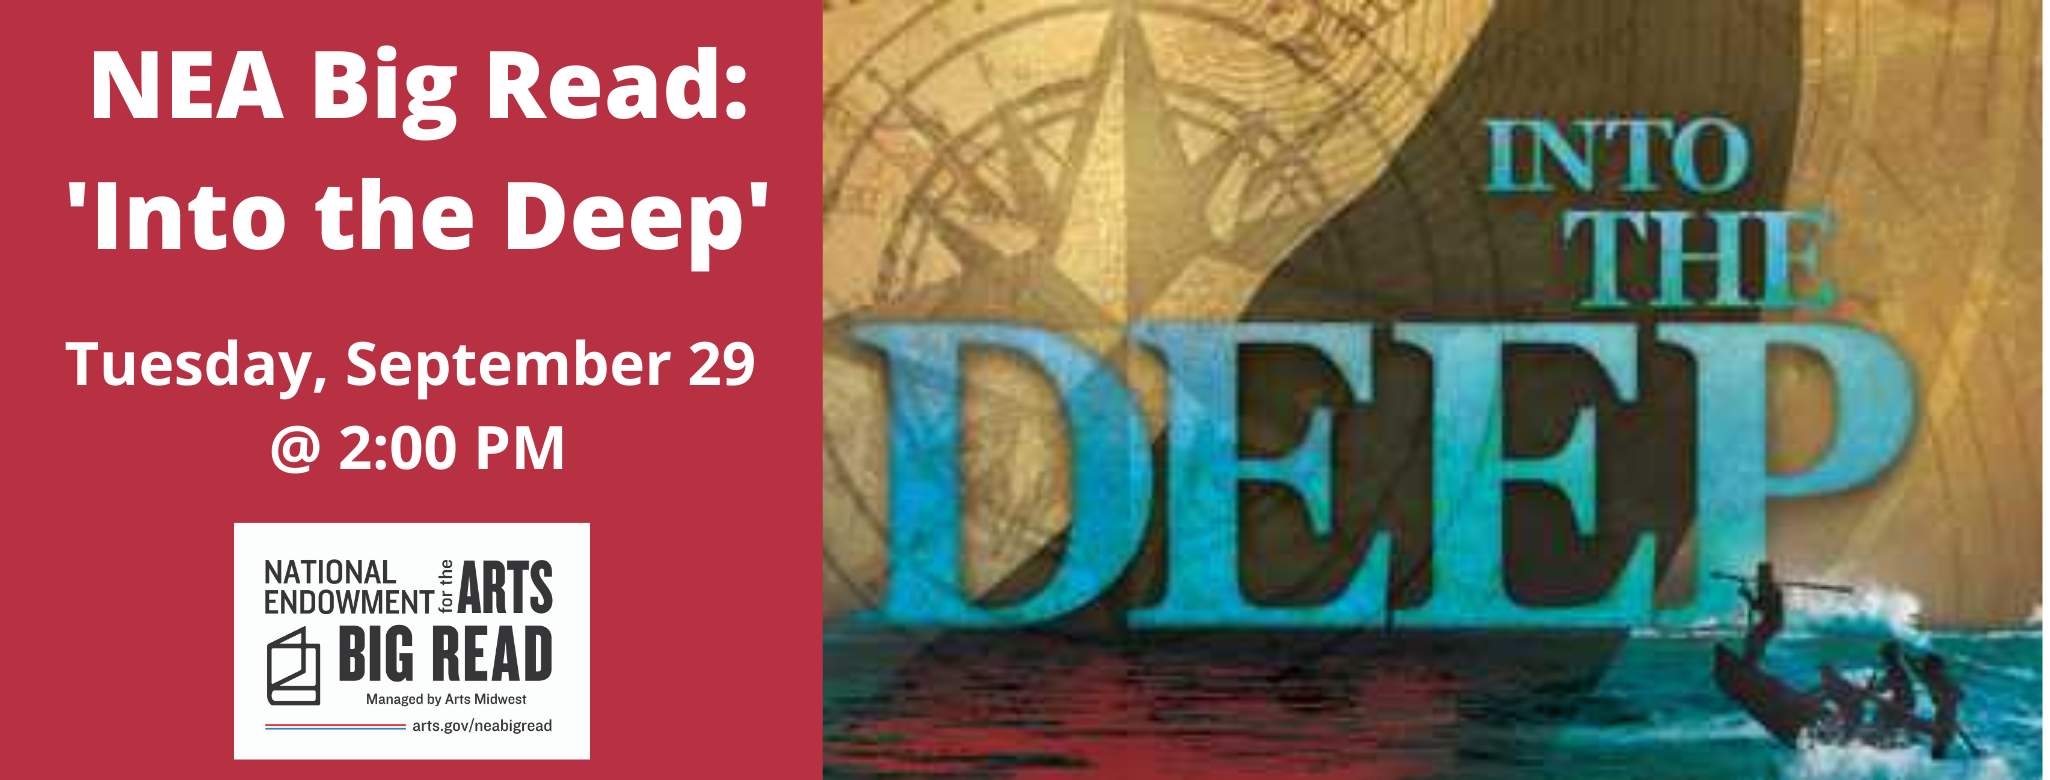 NEA Big Read: 'Into the Deep'